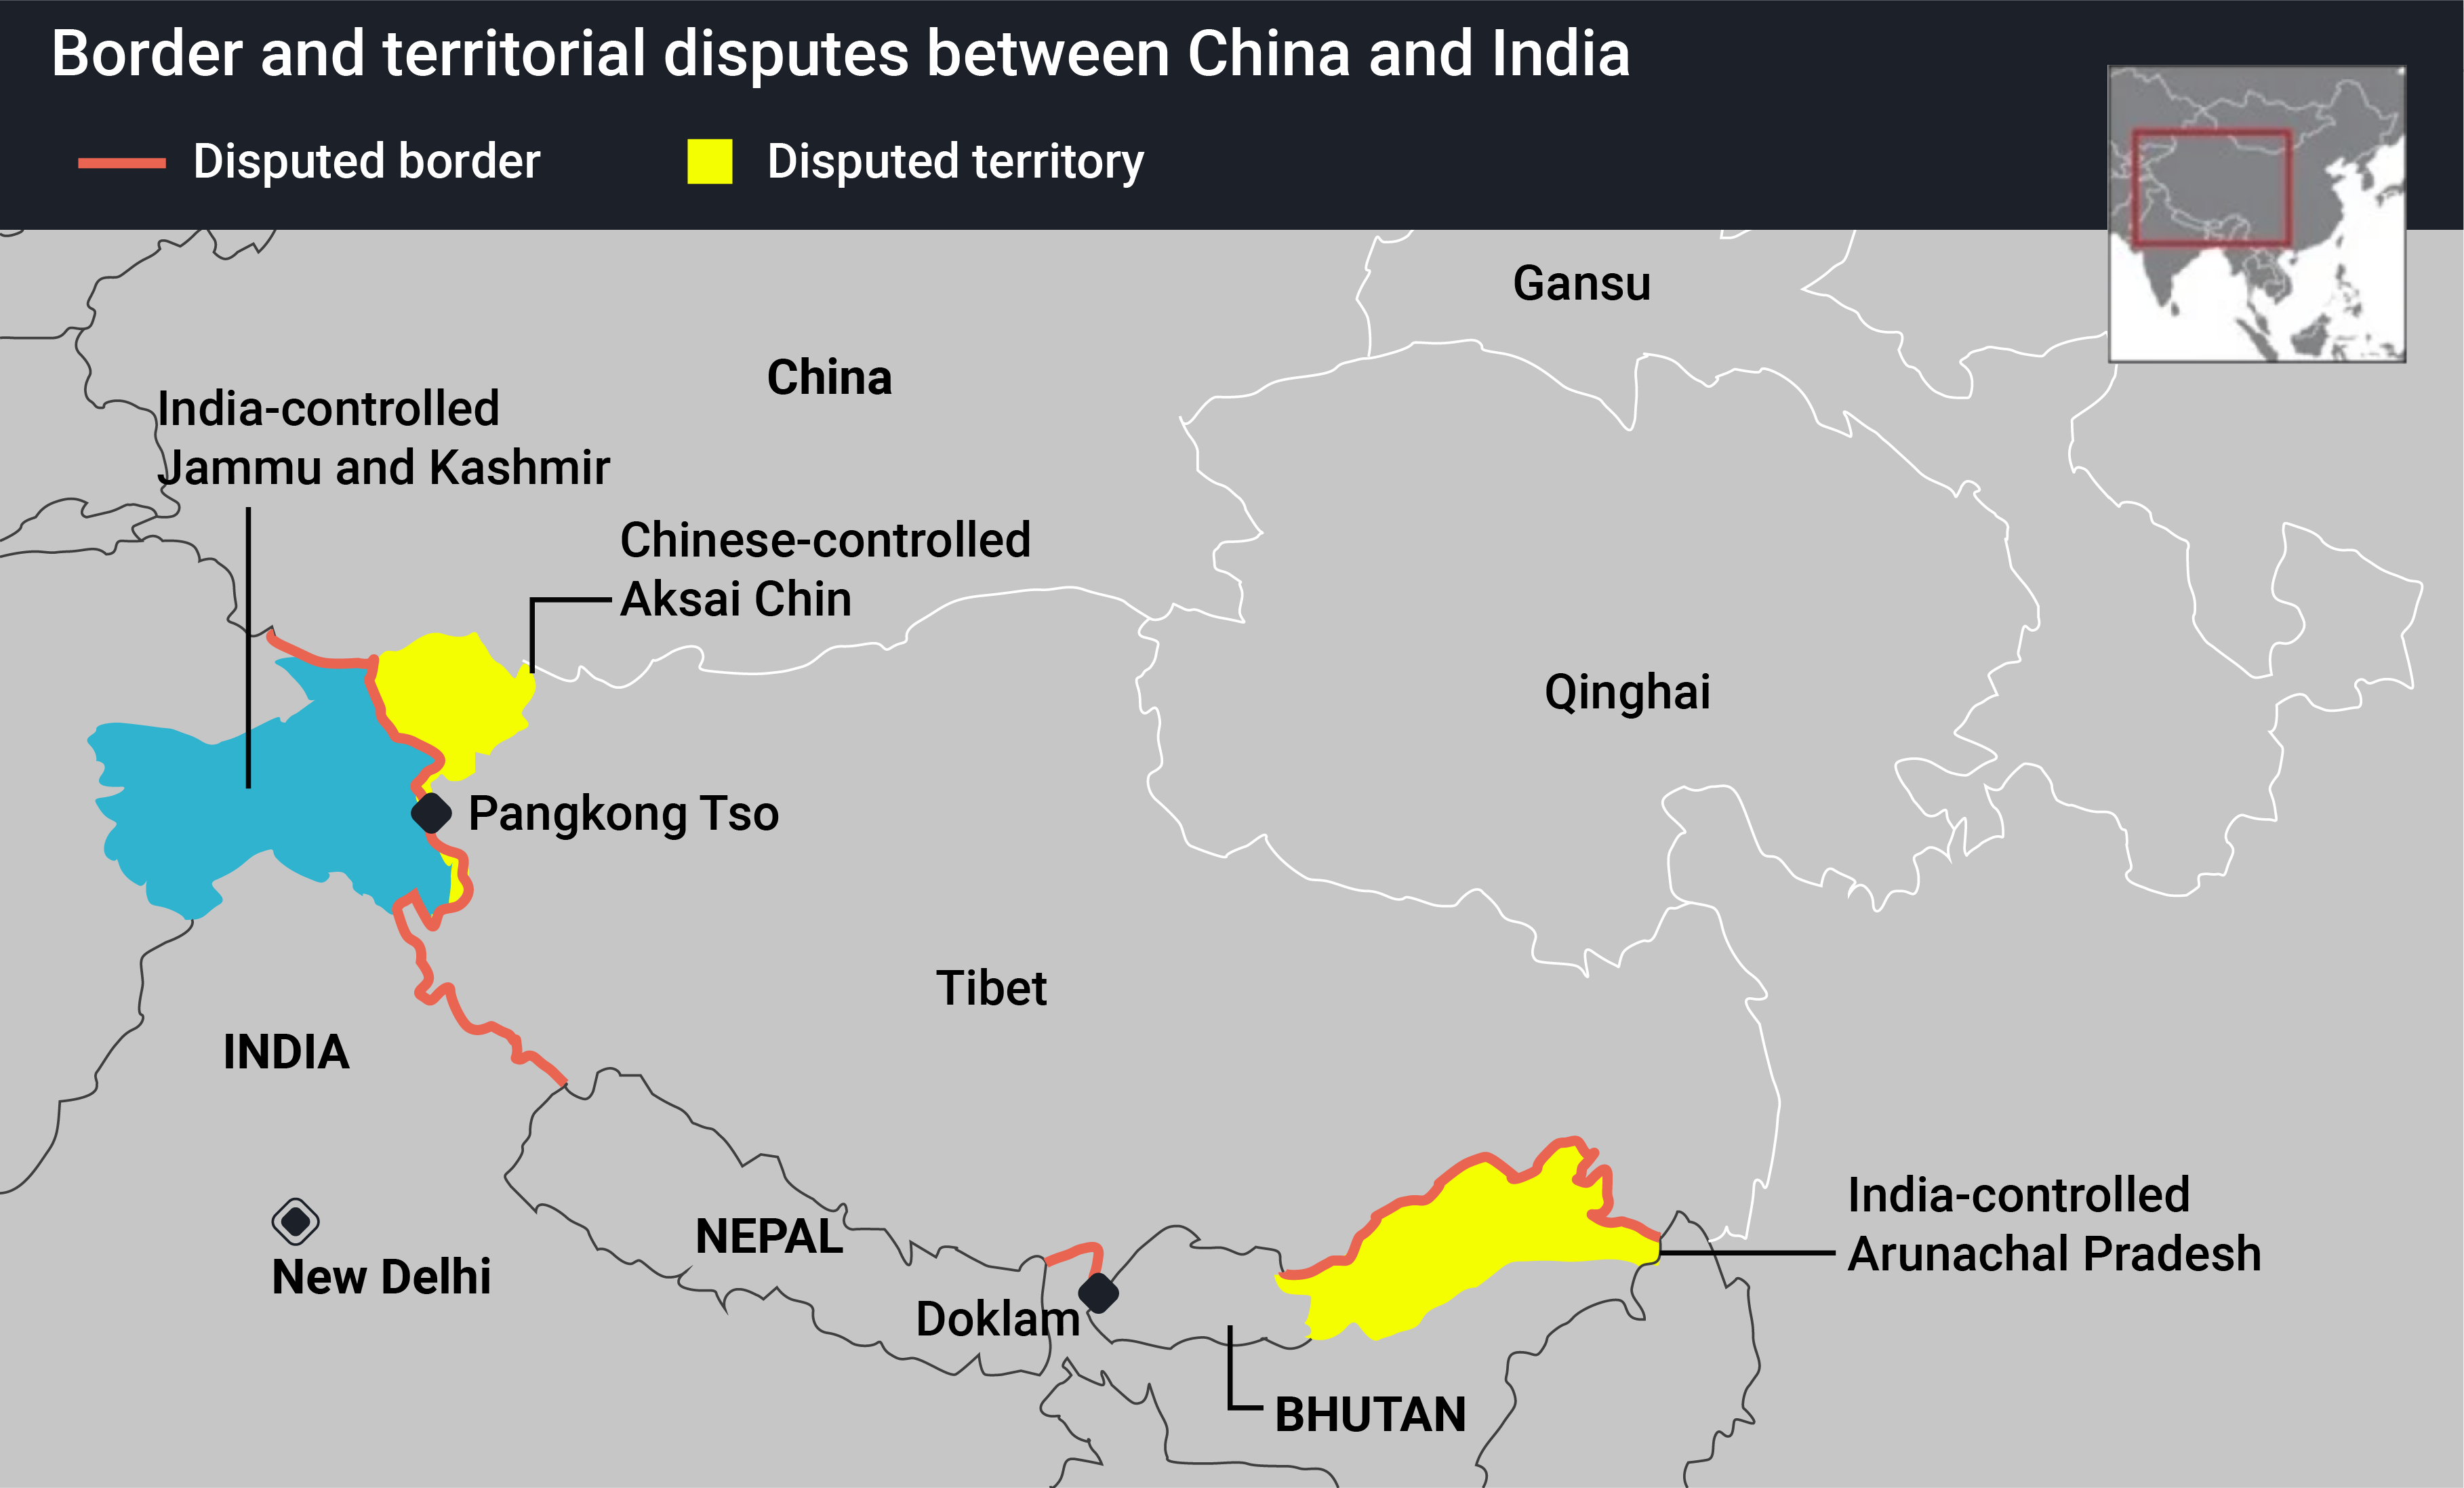 China flexing military muscle in border dispute with India